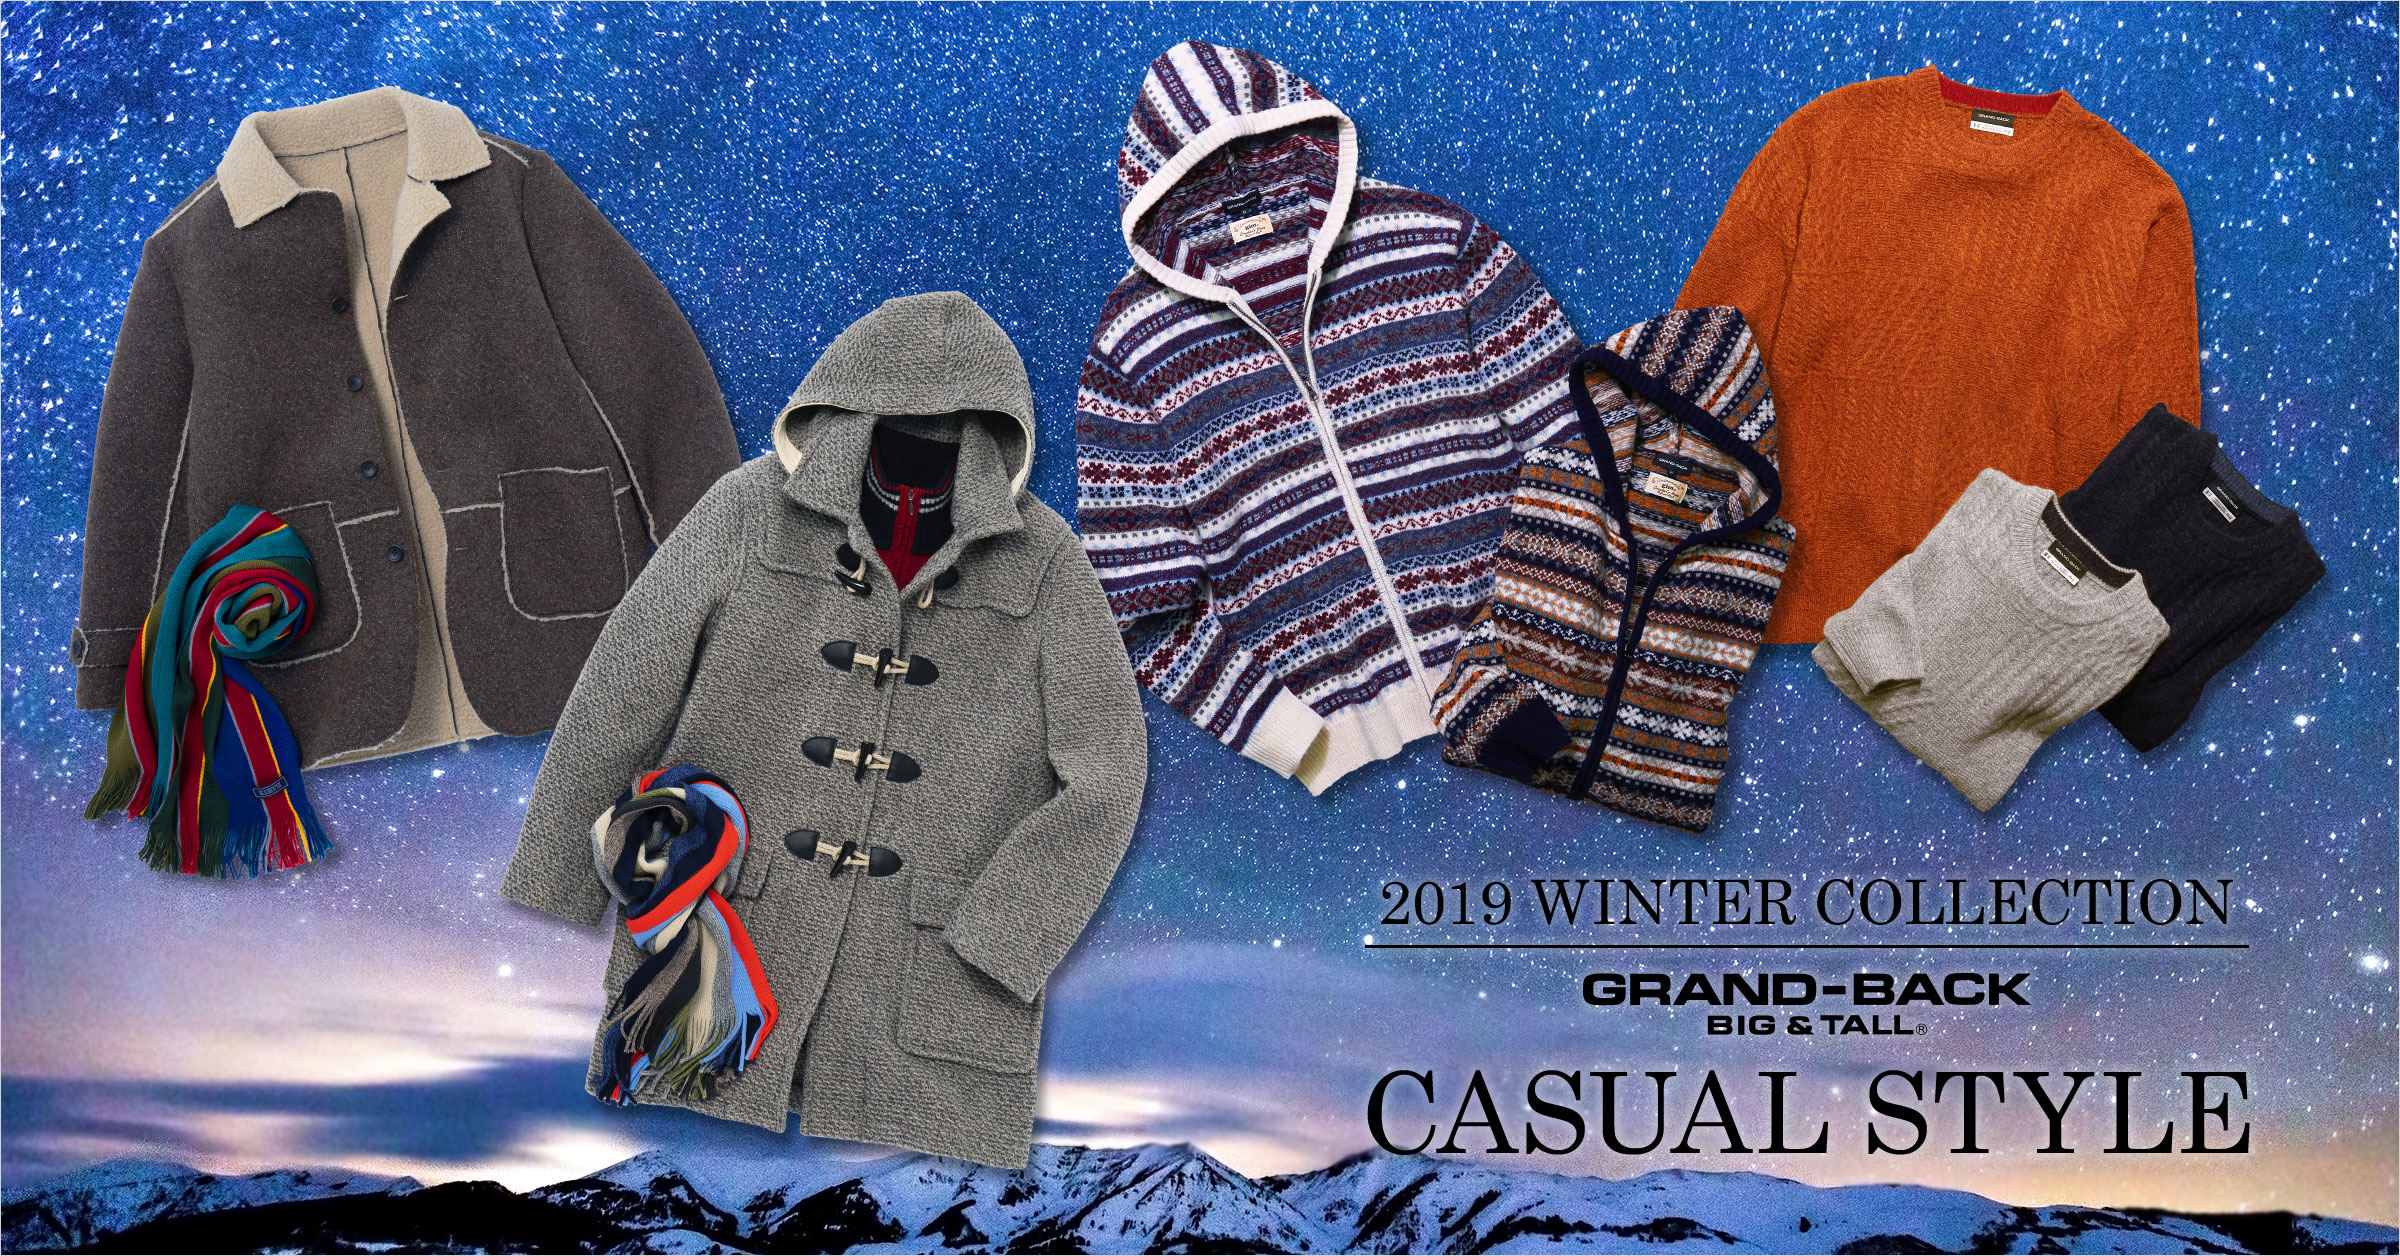 2019 Winter Casual style